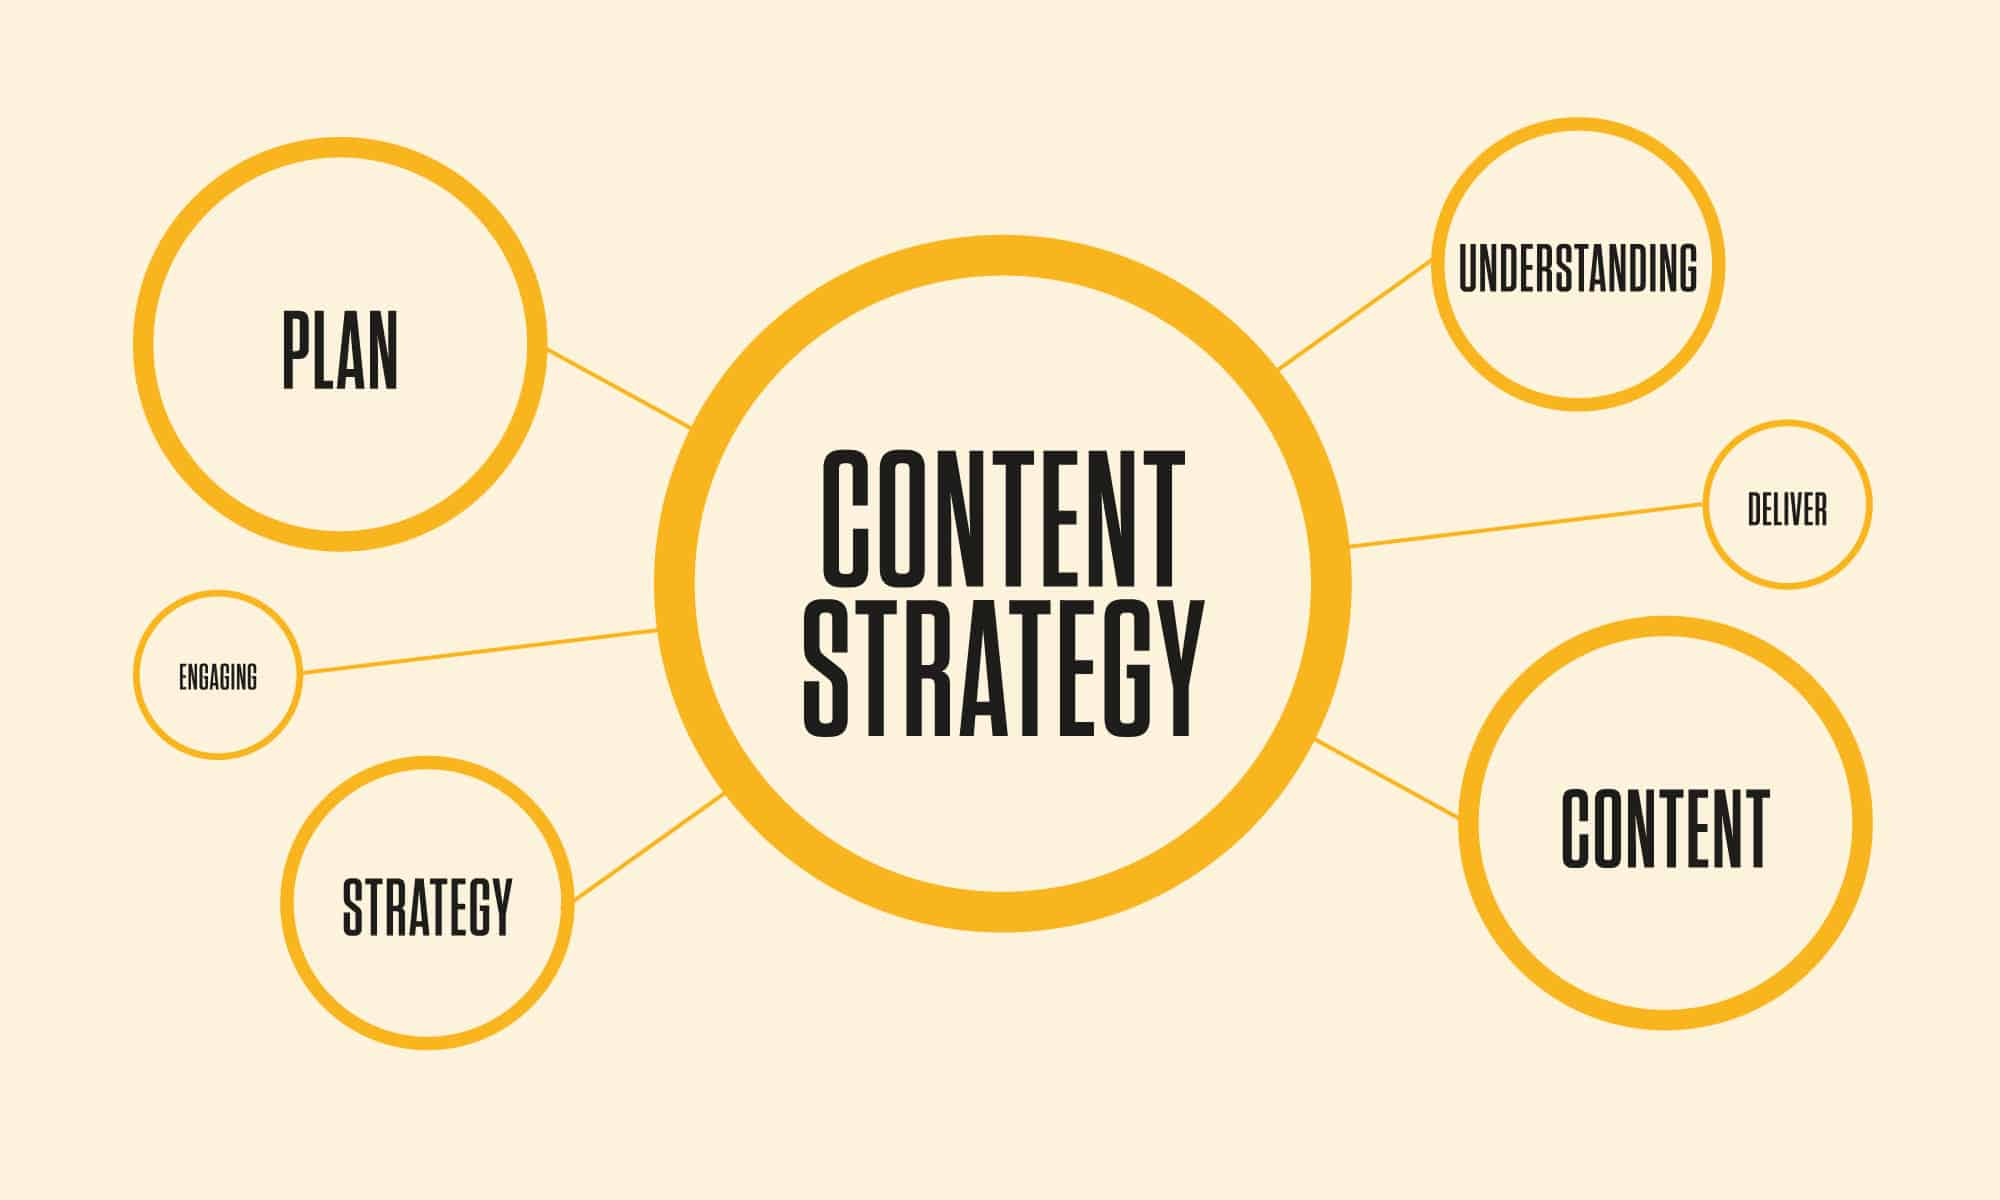 Content strategy is important planning tool for SEO growth.